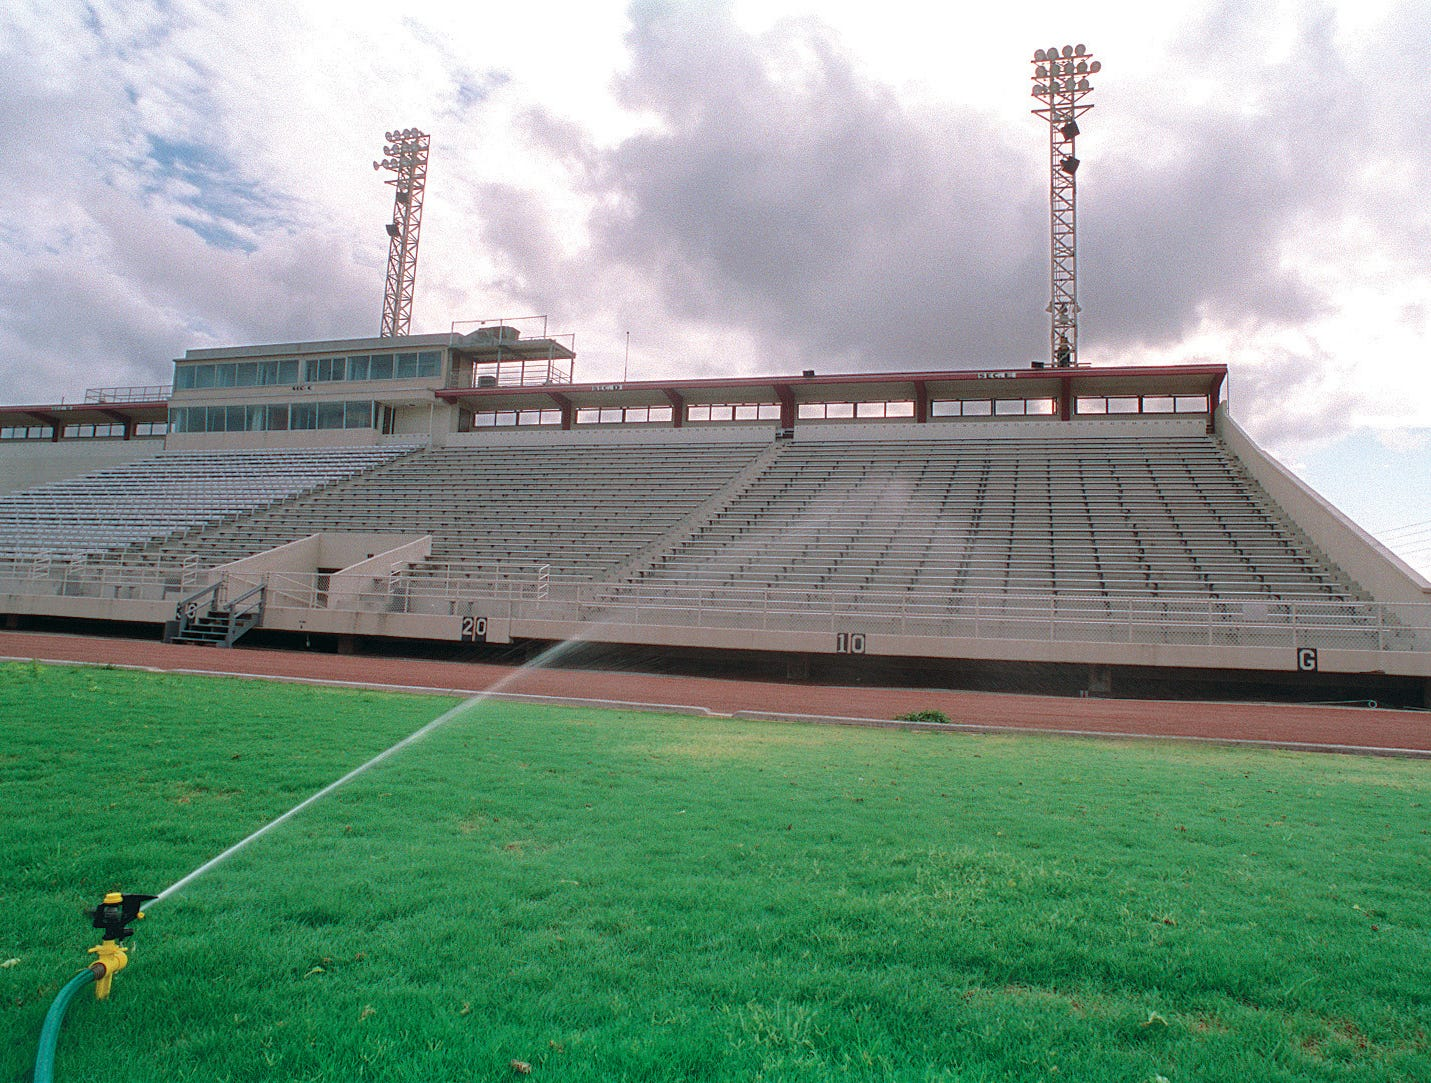 The Buc Stadium field received some much needed water from a sprinkler on some areas that have been drying out due to the drought on June 21, 1996.